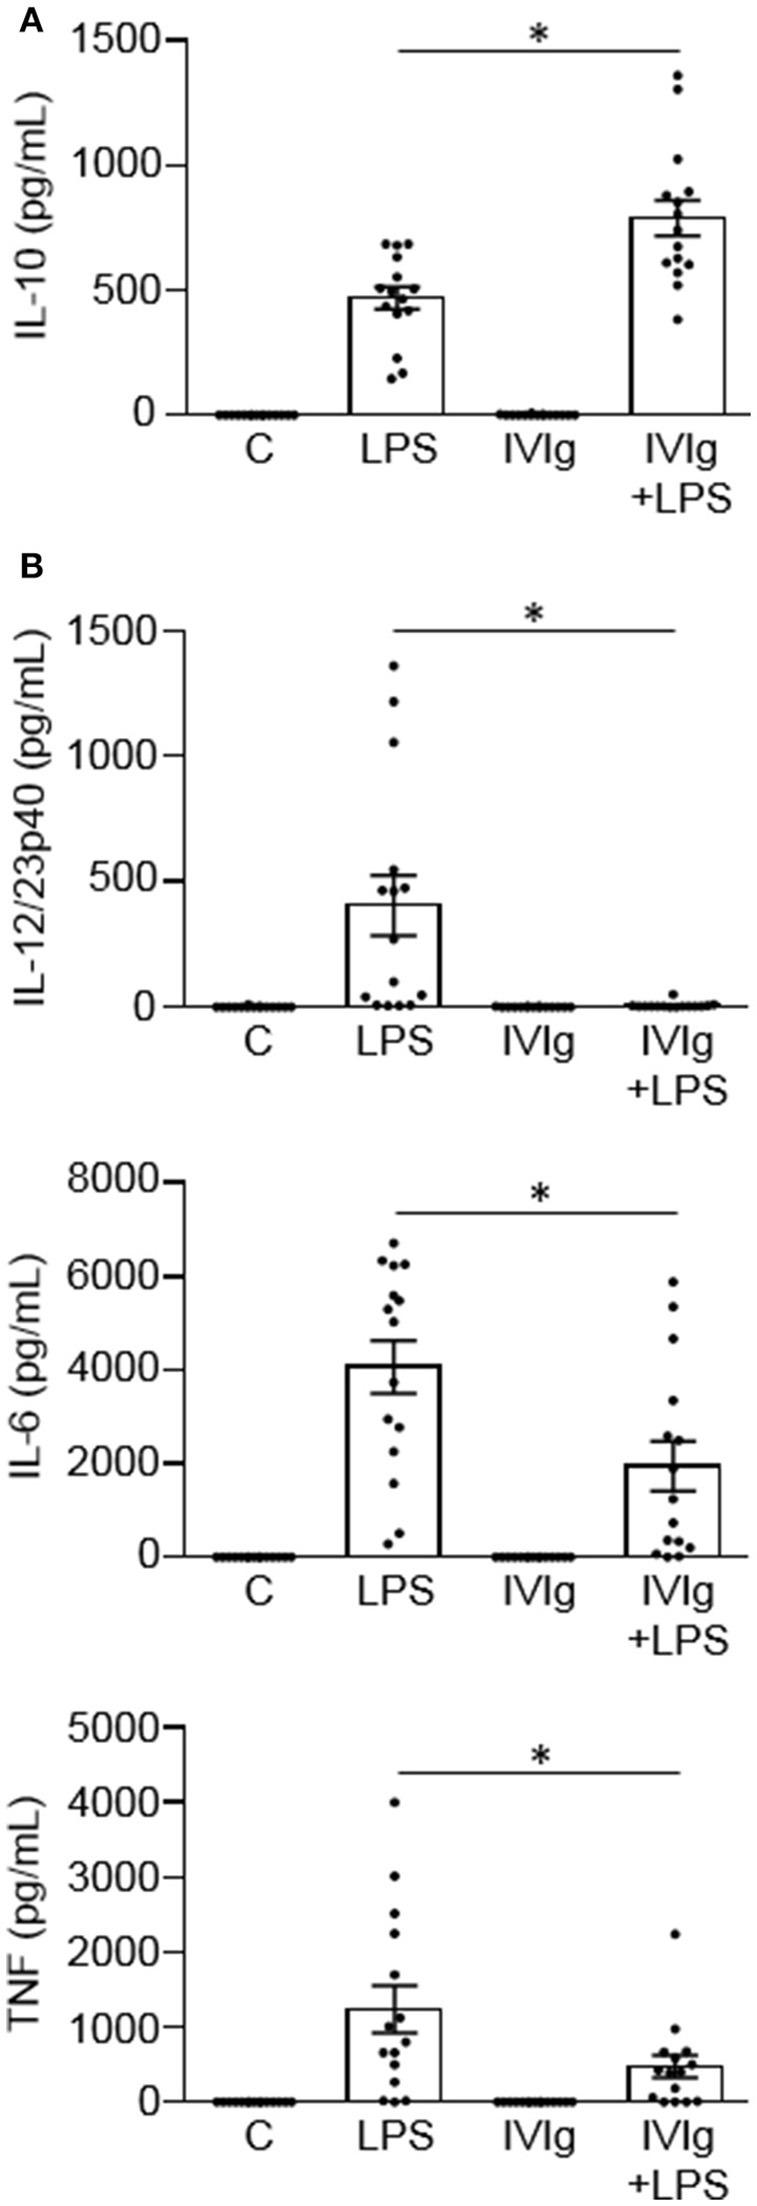 IVIg increases IL-10 production and reduces pro-inflammatory cytokine production in LPS-stimulated human monocytes. Monocytes from healthy control participants were unstimulated [Control (C)] or stimulated with LPS (100 ng/ml), IVIg (5 mg/ml), or both, for 24 h. Clarified cell supernatants were assayed for (A) IL-10, (B) IL-12/23p40, IL-6, or TNF by ELISA. Data are mean ± SEM with n = 16 participants performed as independent experiments, and assayed in duplicate. * p